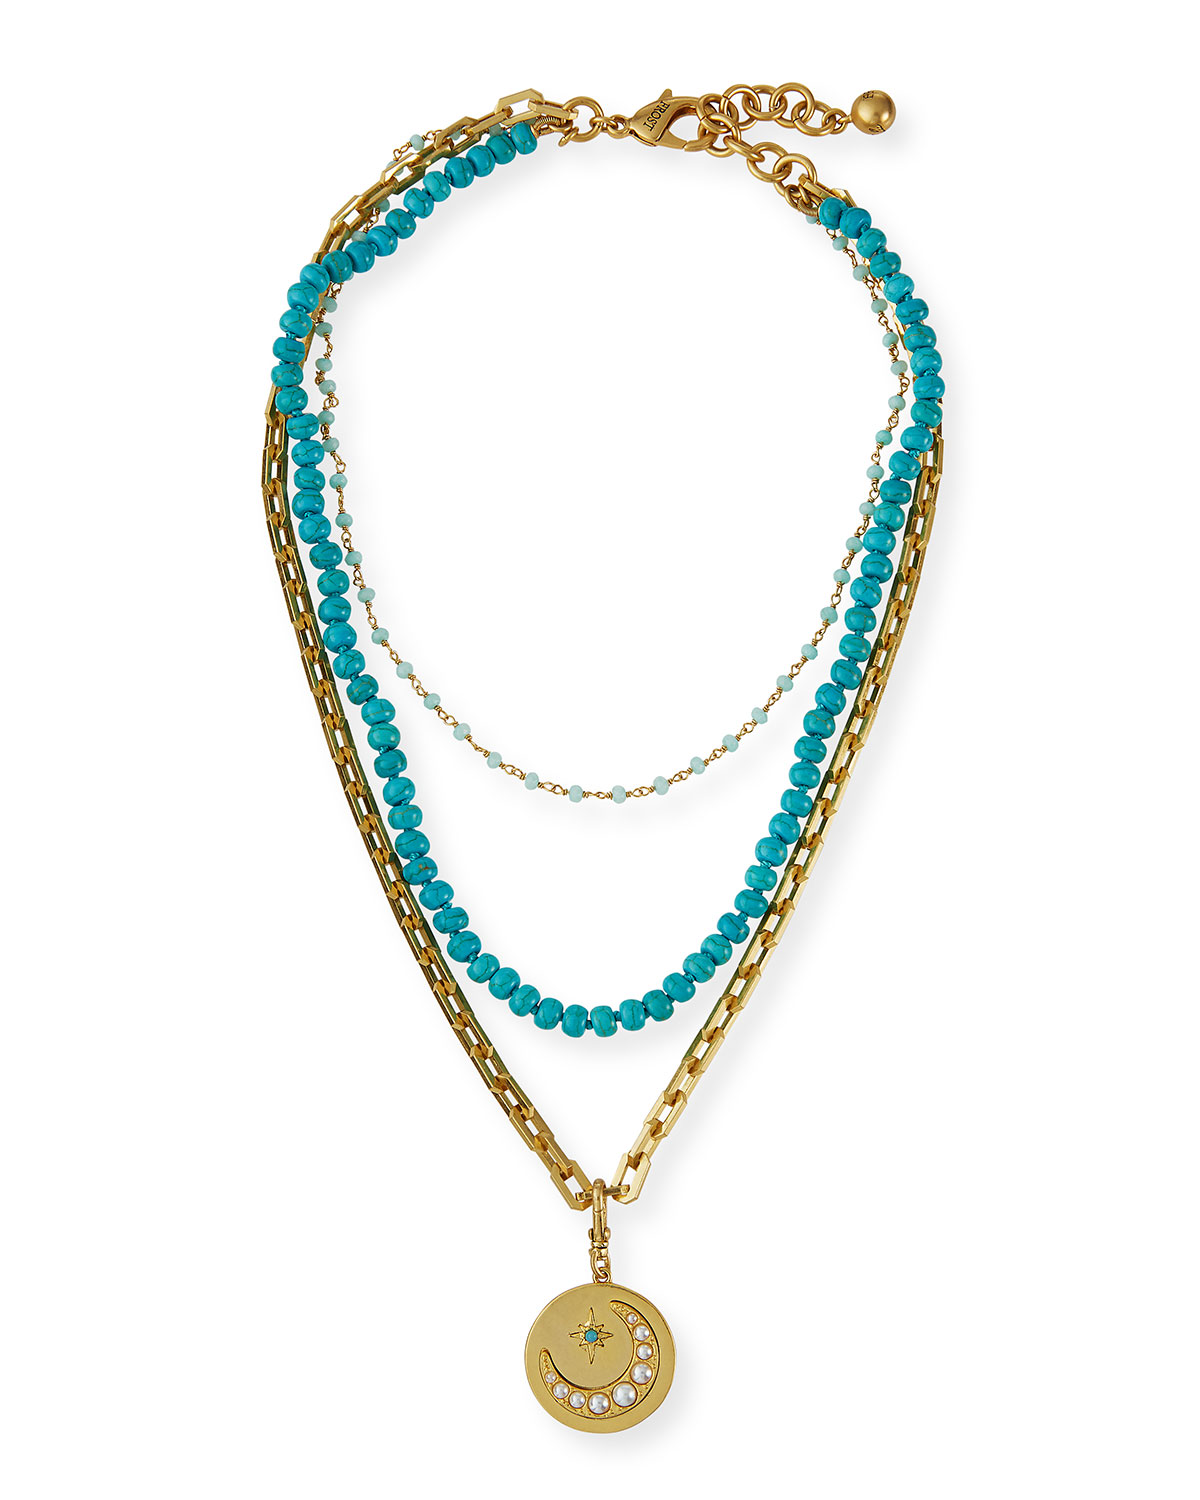 Under a Turquoise Moon Beaded Necklace